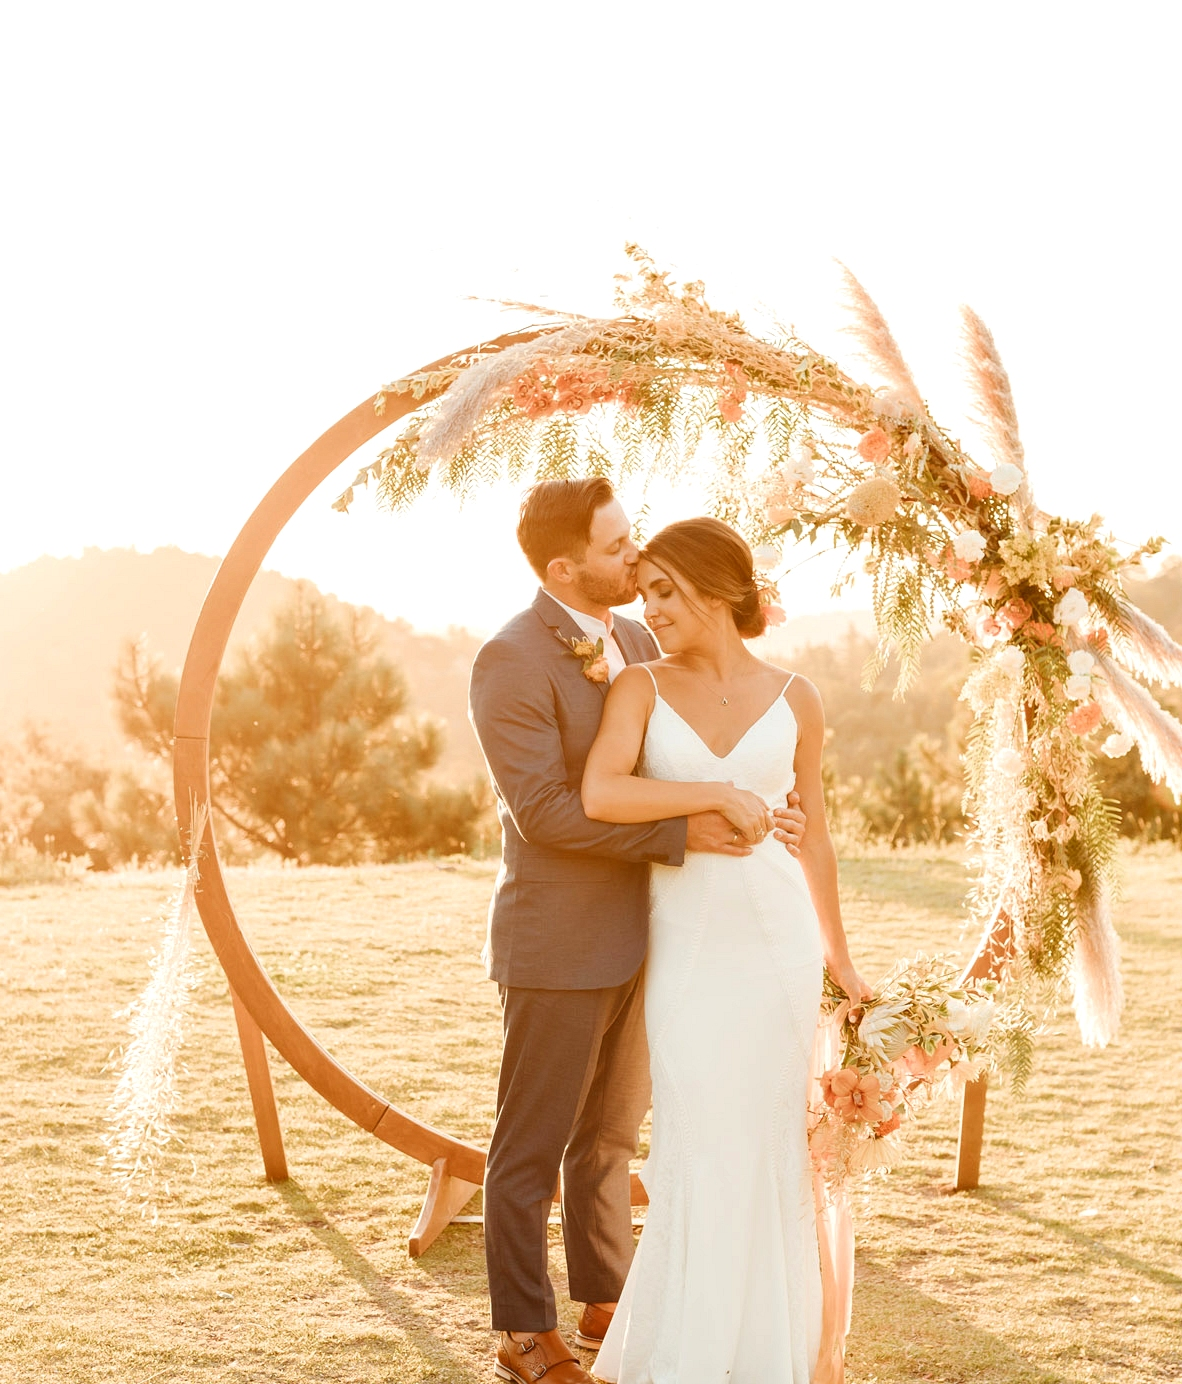 wyatt gown by Lovers Society x Green Wedding Shoes with floral ceremony arch